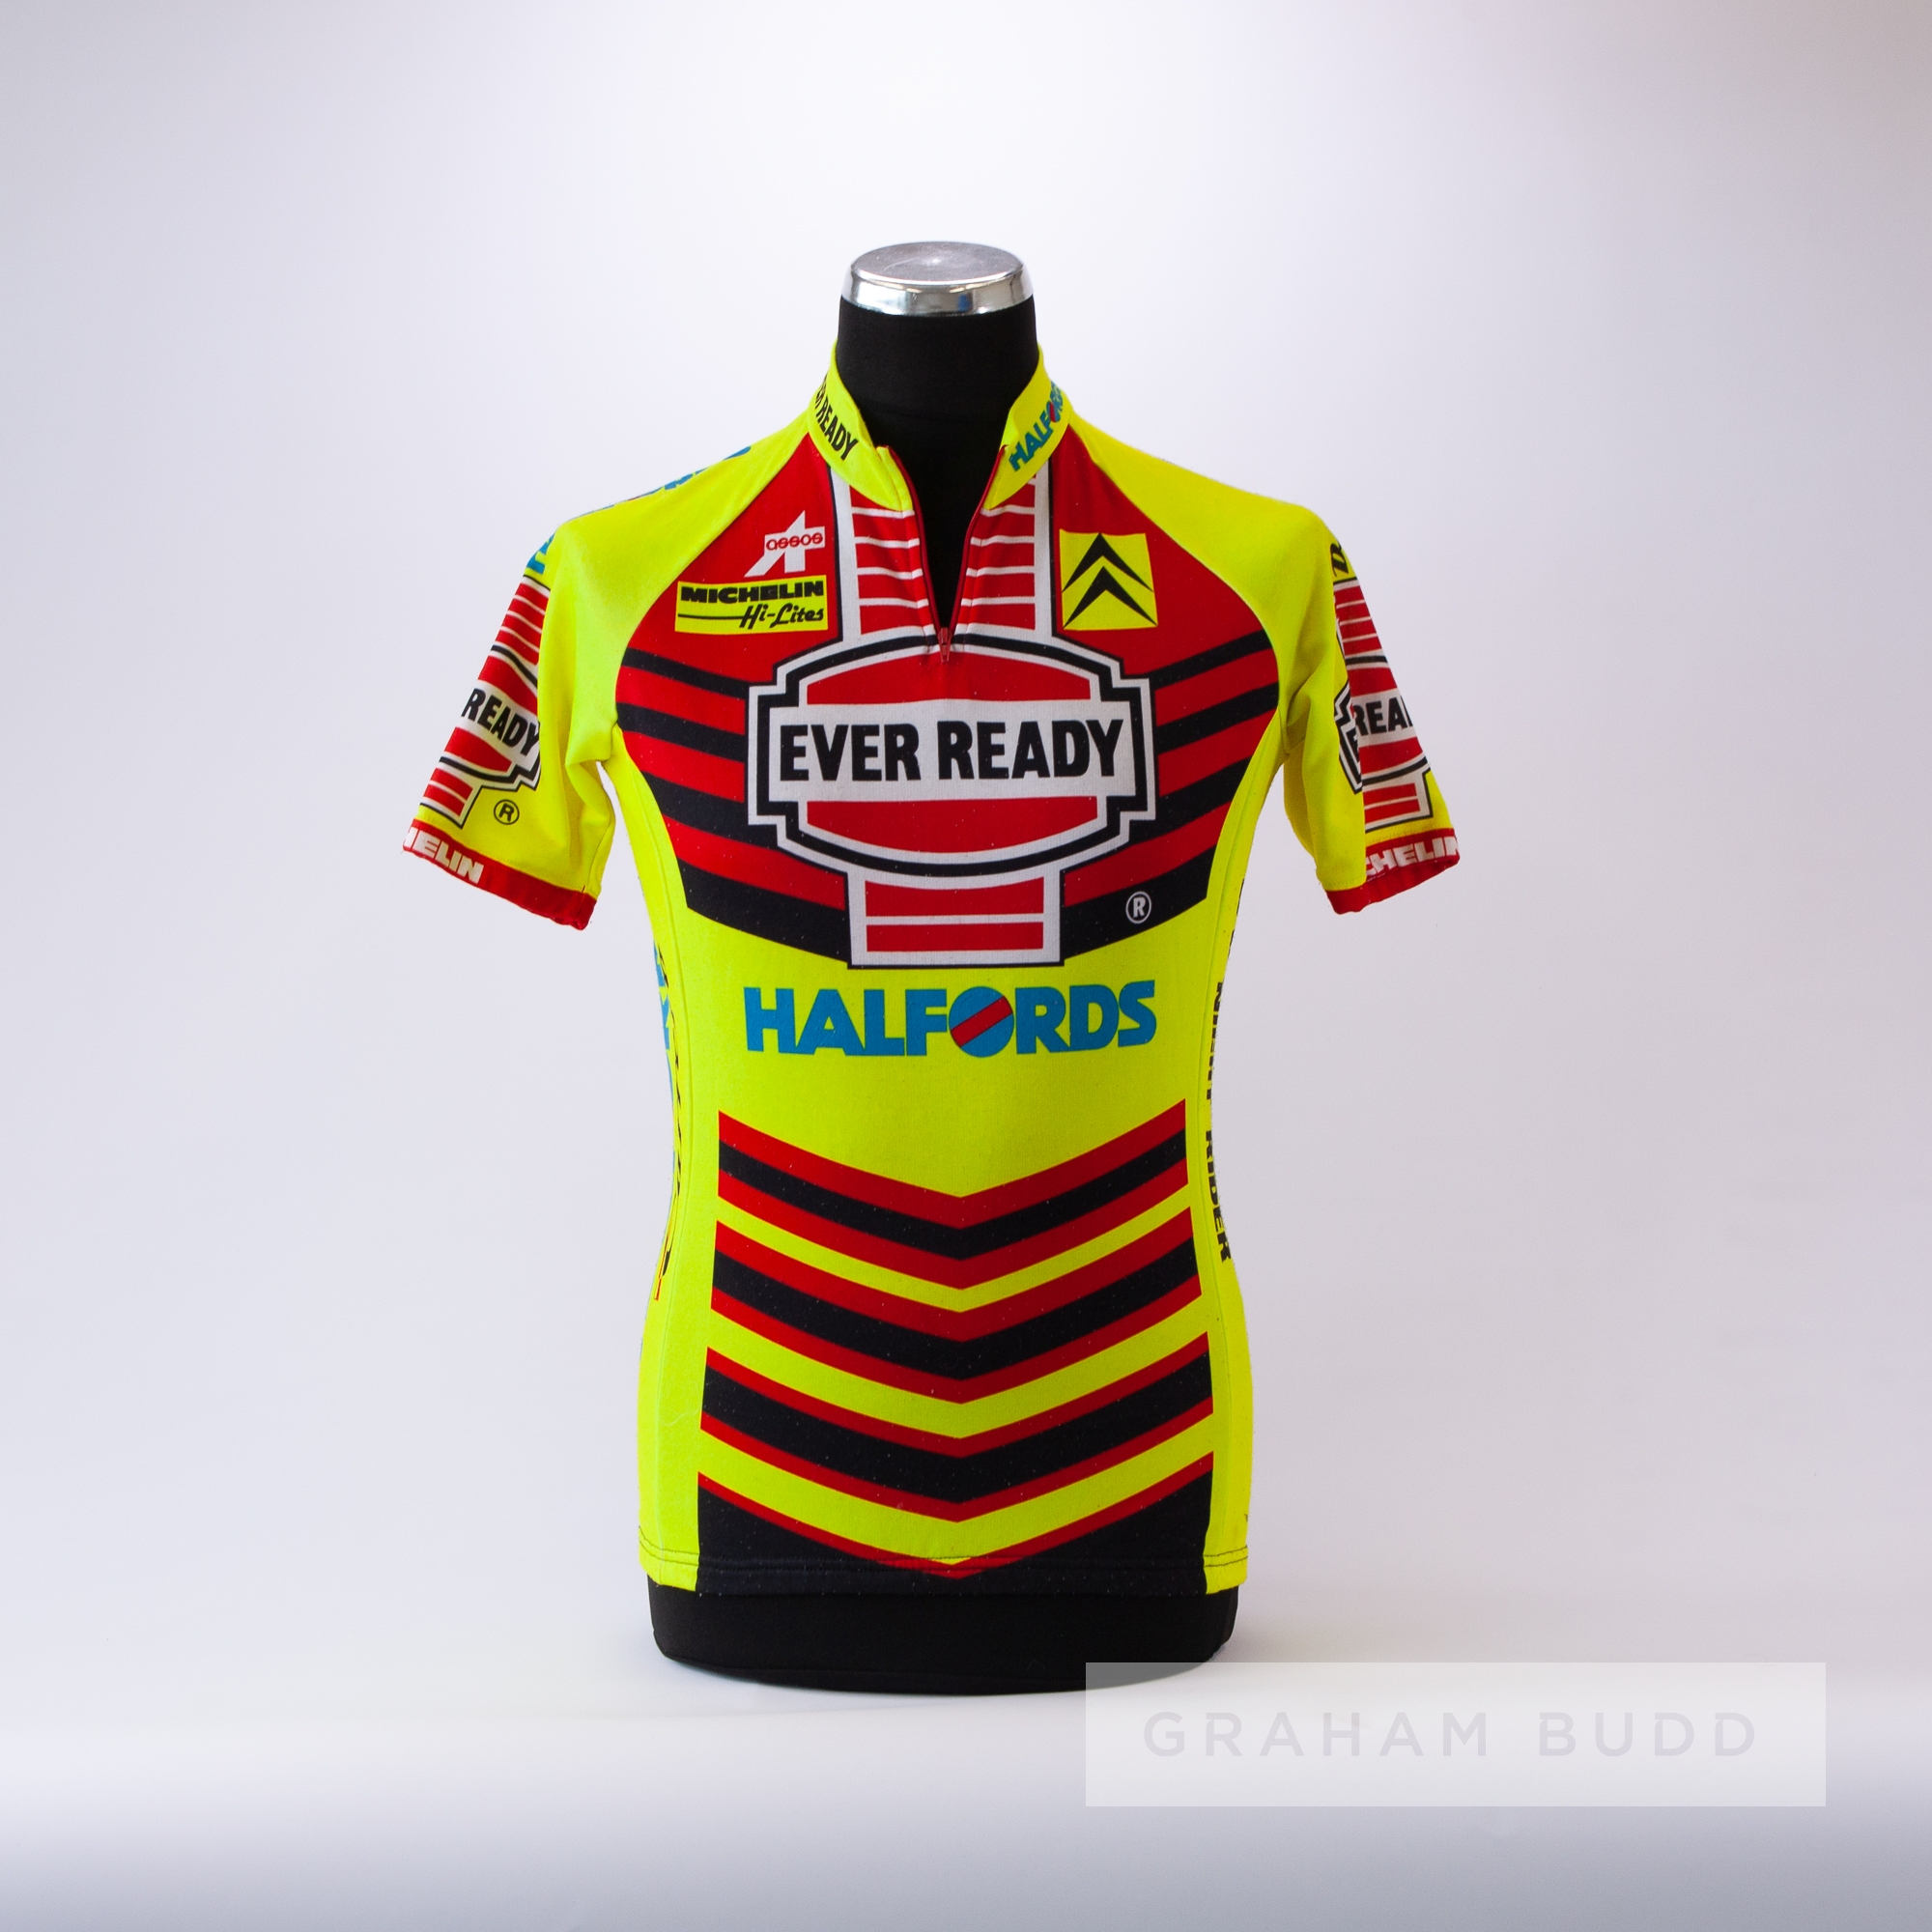 1990 yellow, red and black Ever Ready Halfords Assos Cycling race jersey, scarce, polyester short- - Image 3 of 4